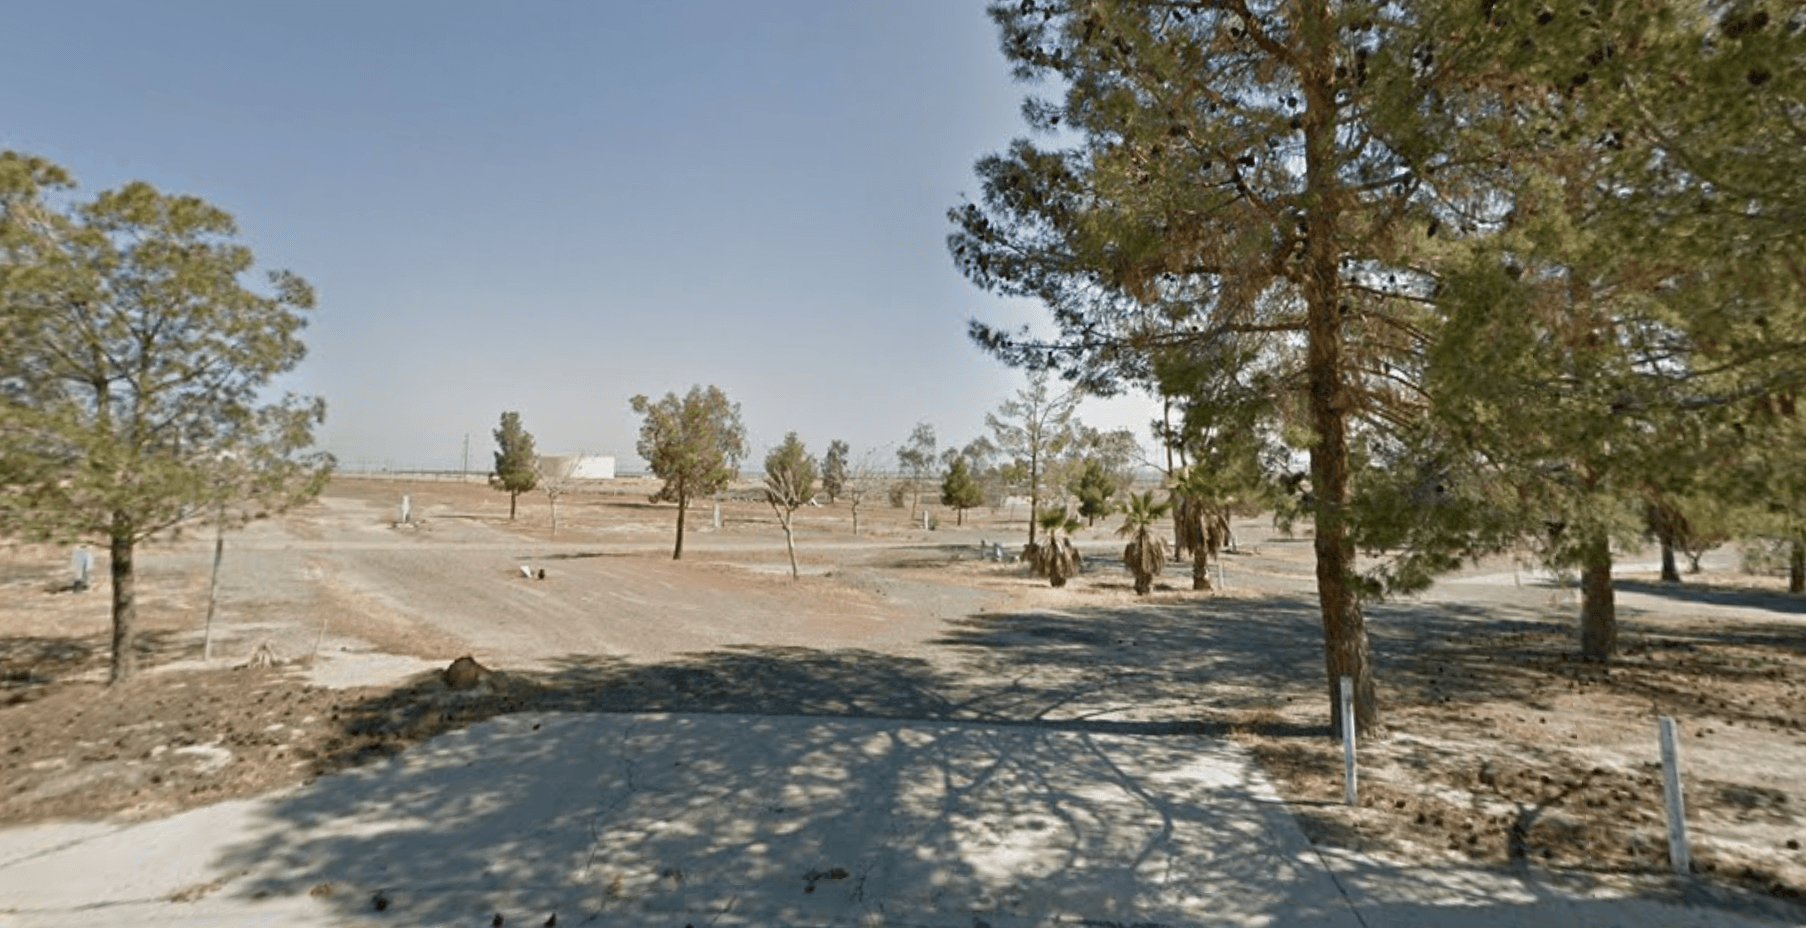 11+ acres of Prime Commercial Land in Kettleman City